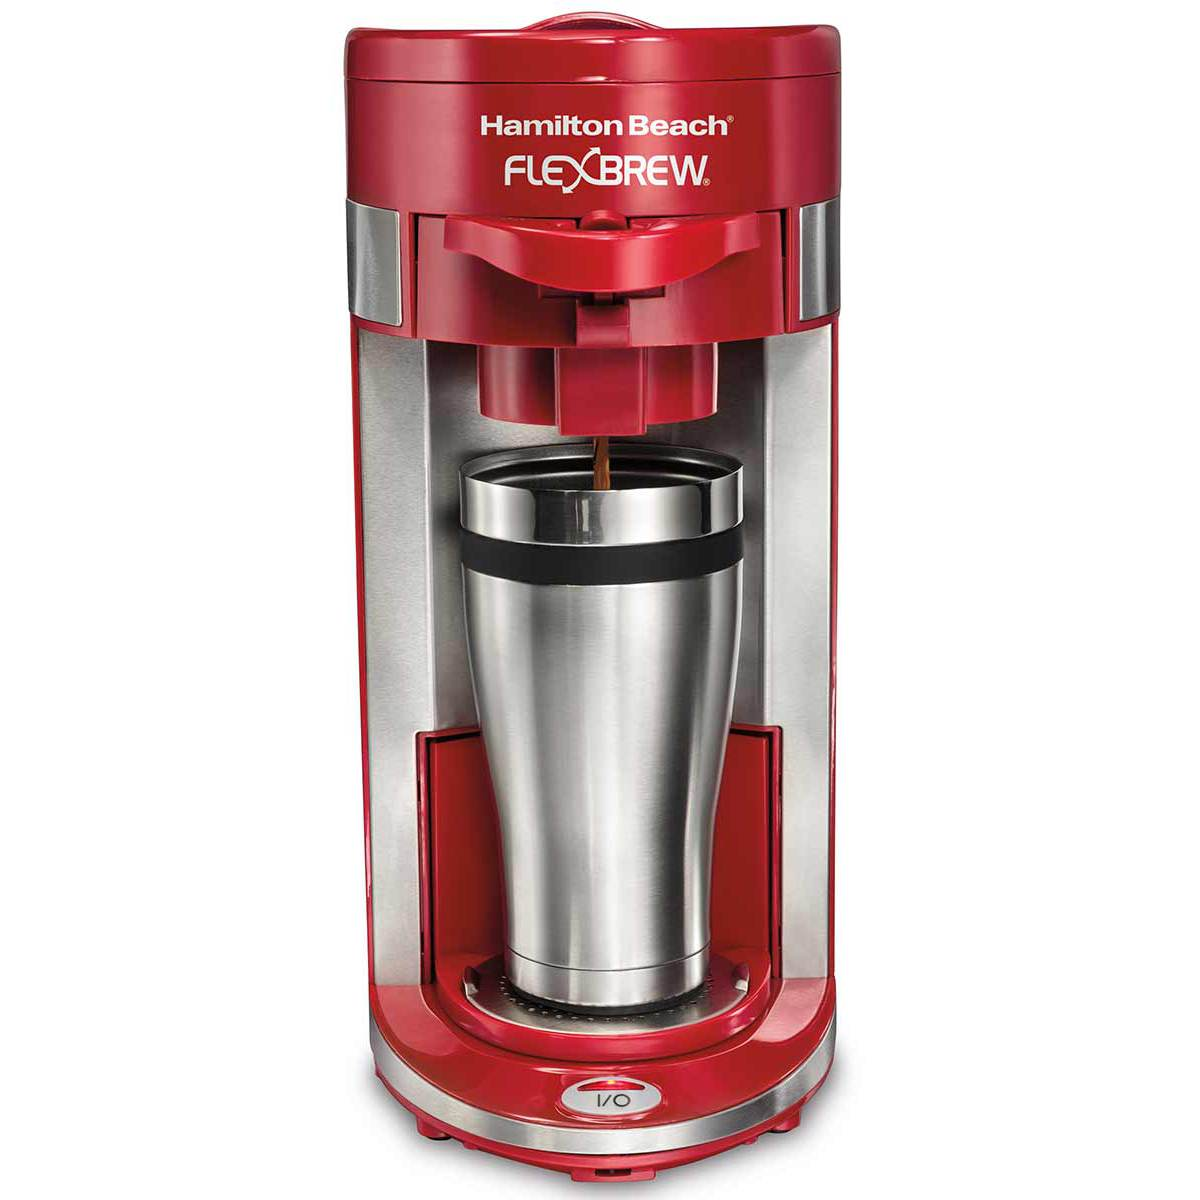 FlexBrew® Single-Serve Coffee Maker - Red (49962)